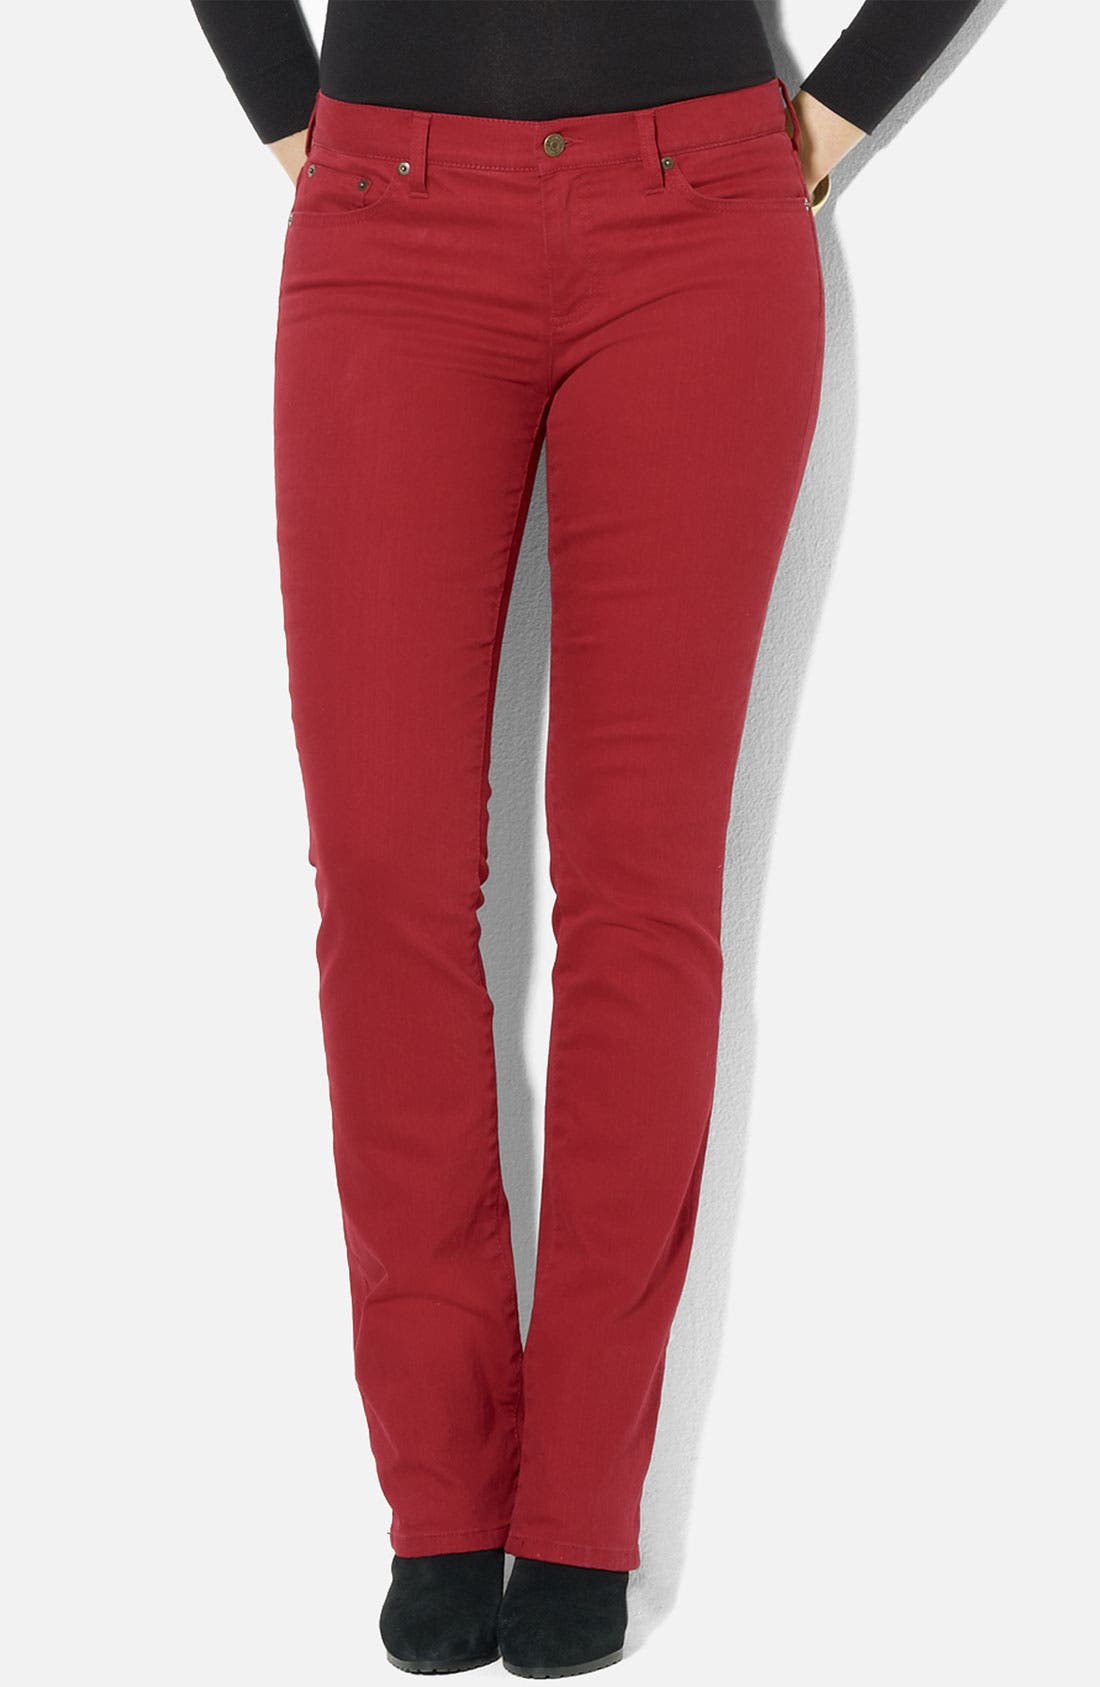 Main Image - Lauren Ralph Lauren Slim Straight Leg Colored Jeans (Petite) (Online Exclusive)